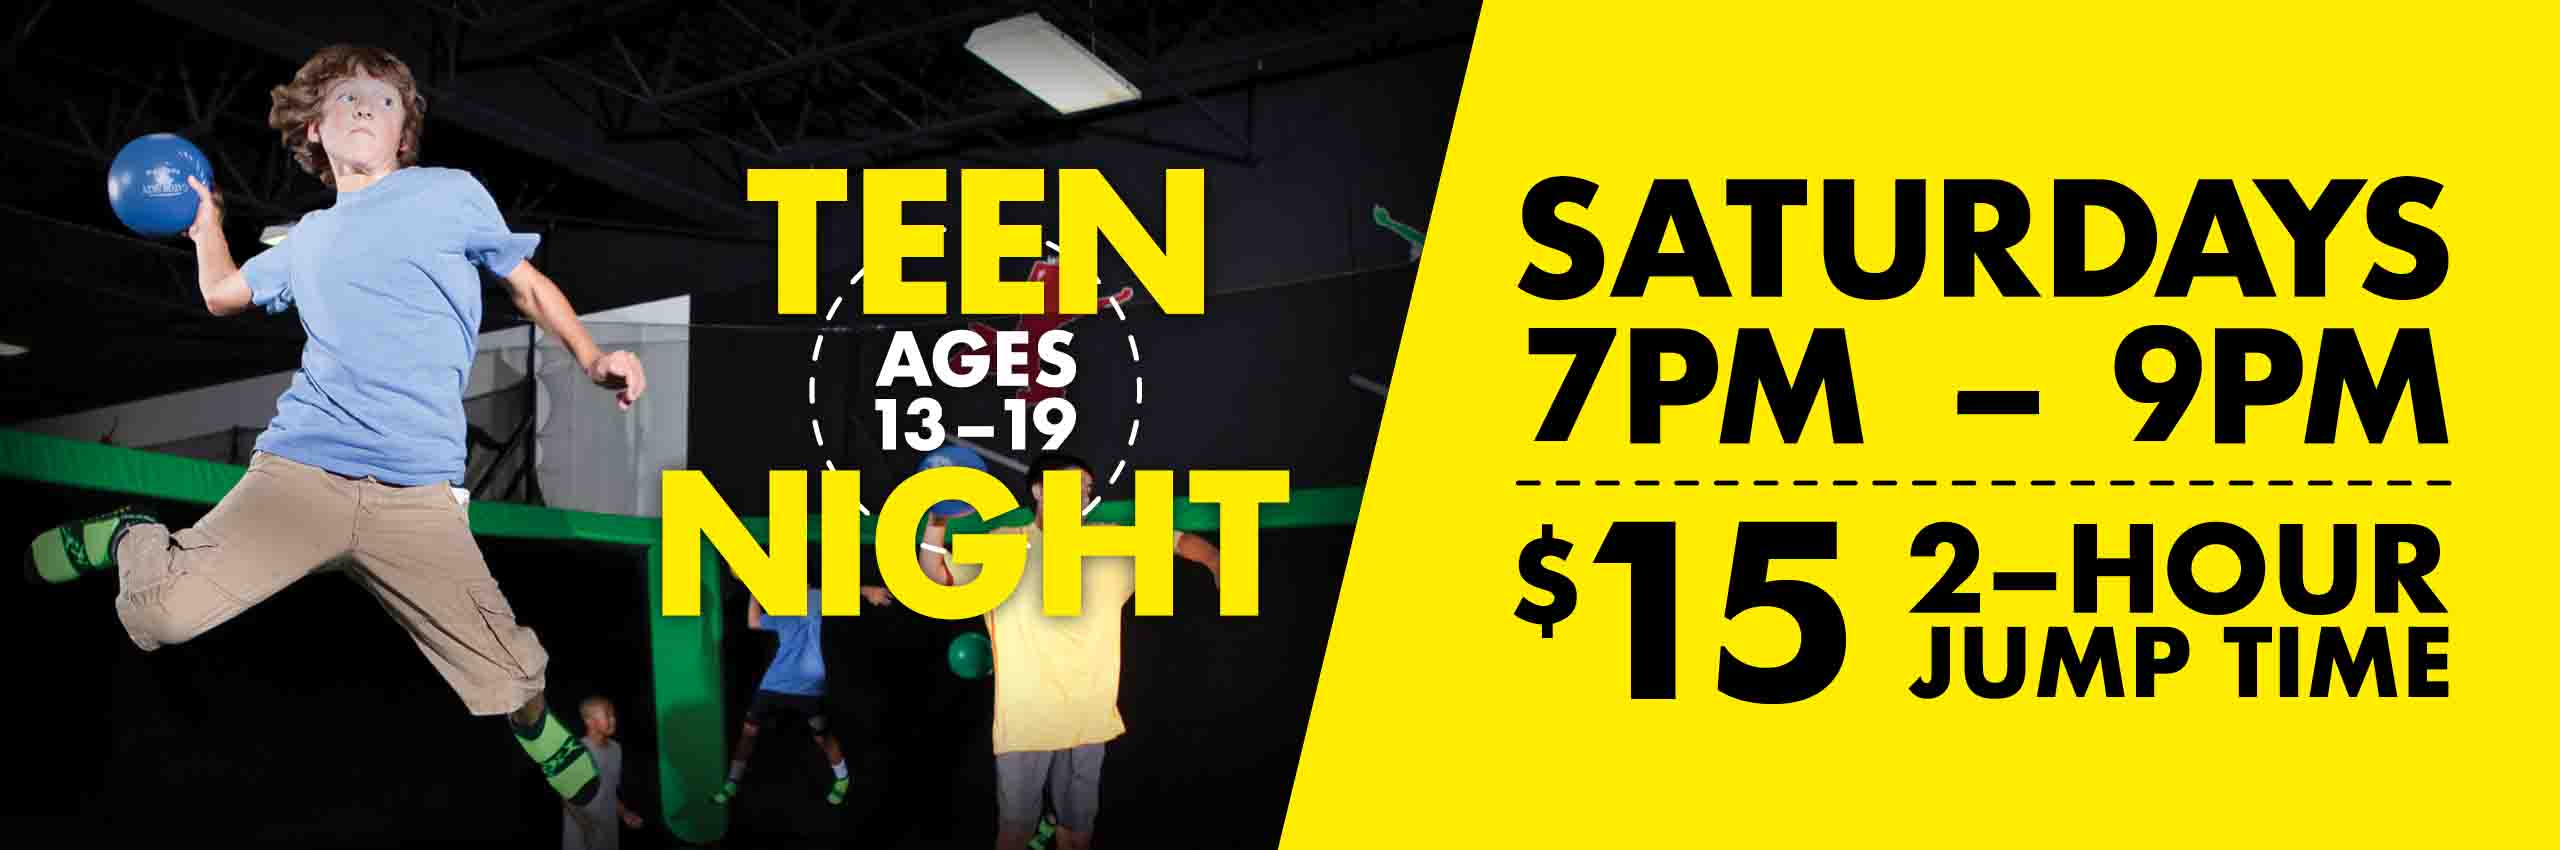 Teen Night 7-9